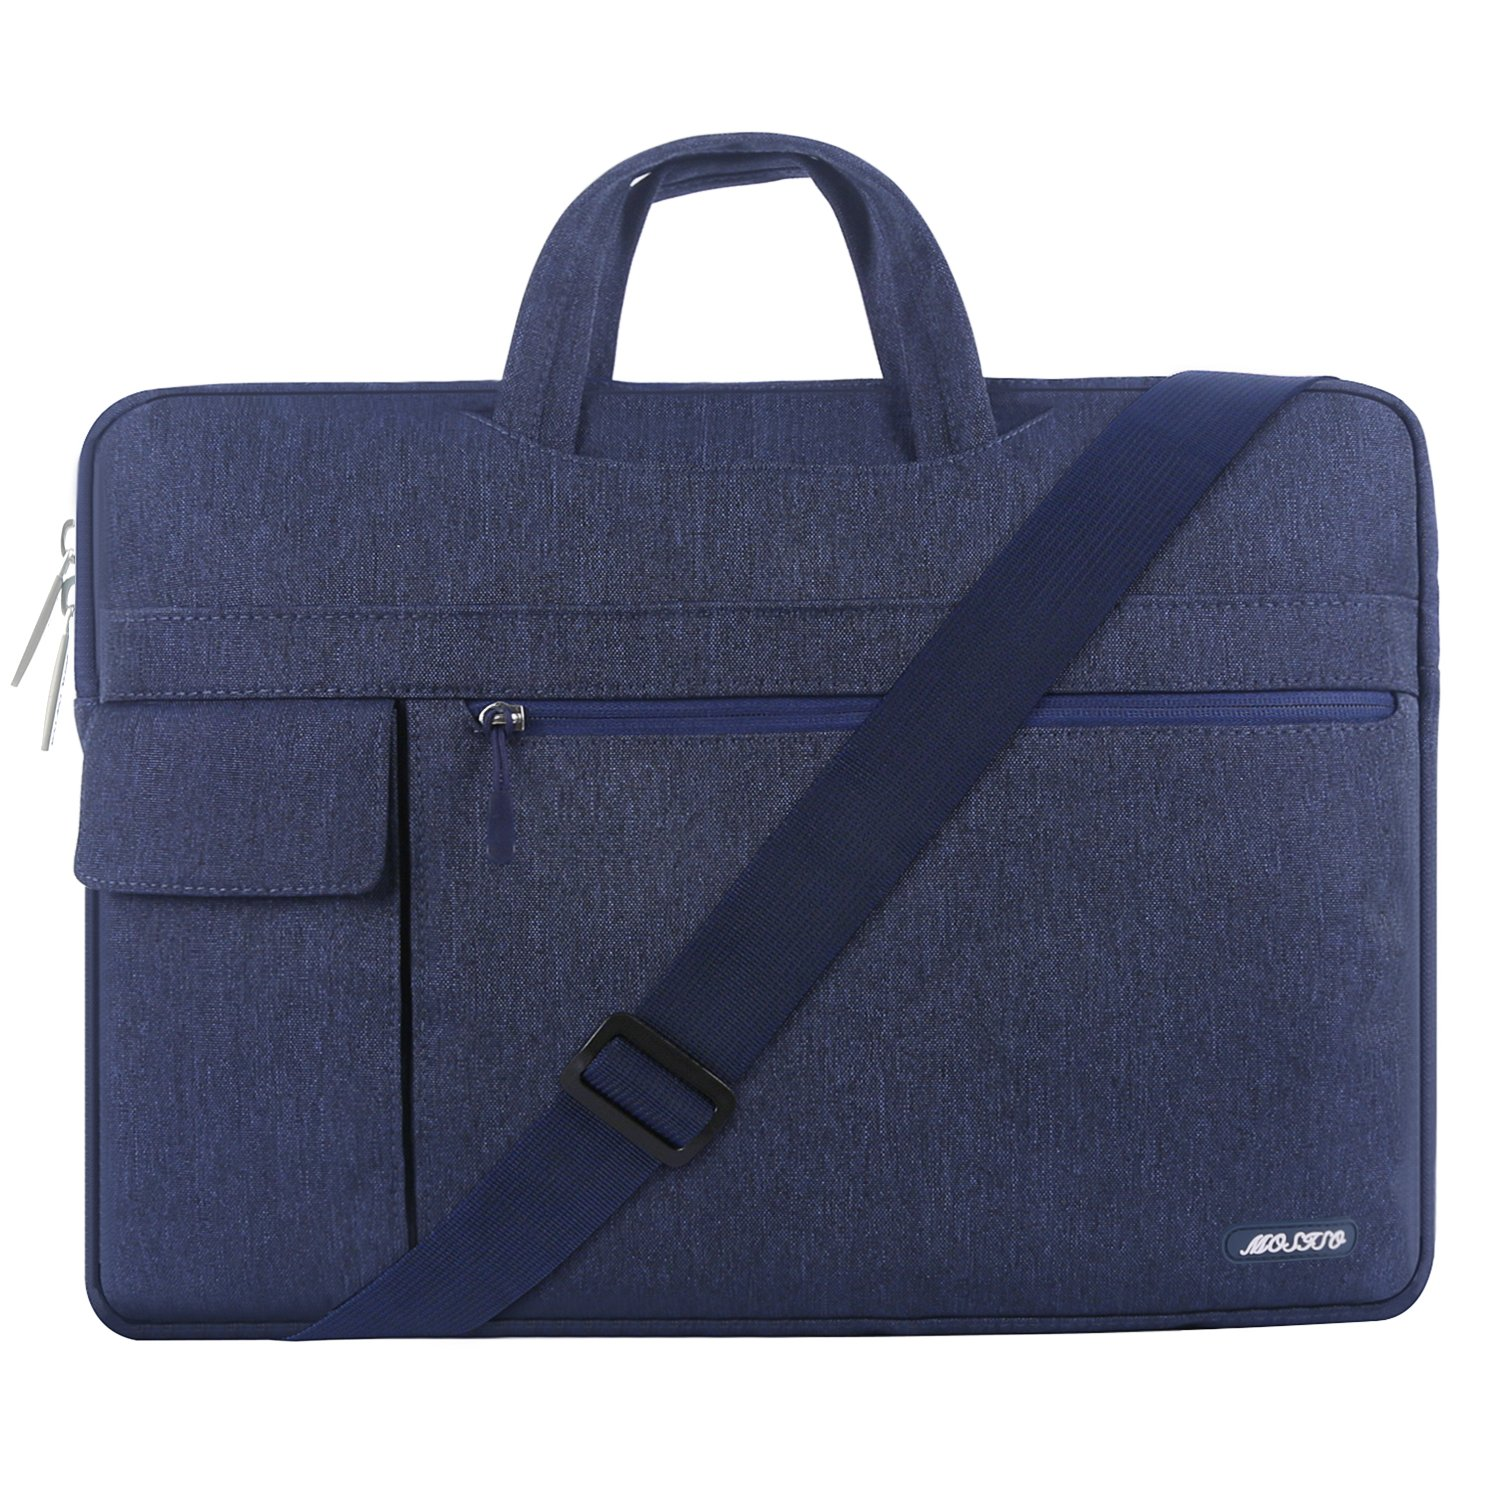 MOSISO Laptop Shoulder Bag Compatible 15-15.6 Inch New MacBook Pro with Touch Bar A1990 & A1707 2018 2017 2016, MacBook Pro, Also Fit 14 Inch Ultrabook, Polyester Flapover Briefcase Sleeve, Navy Blue